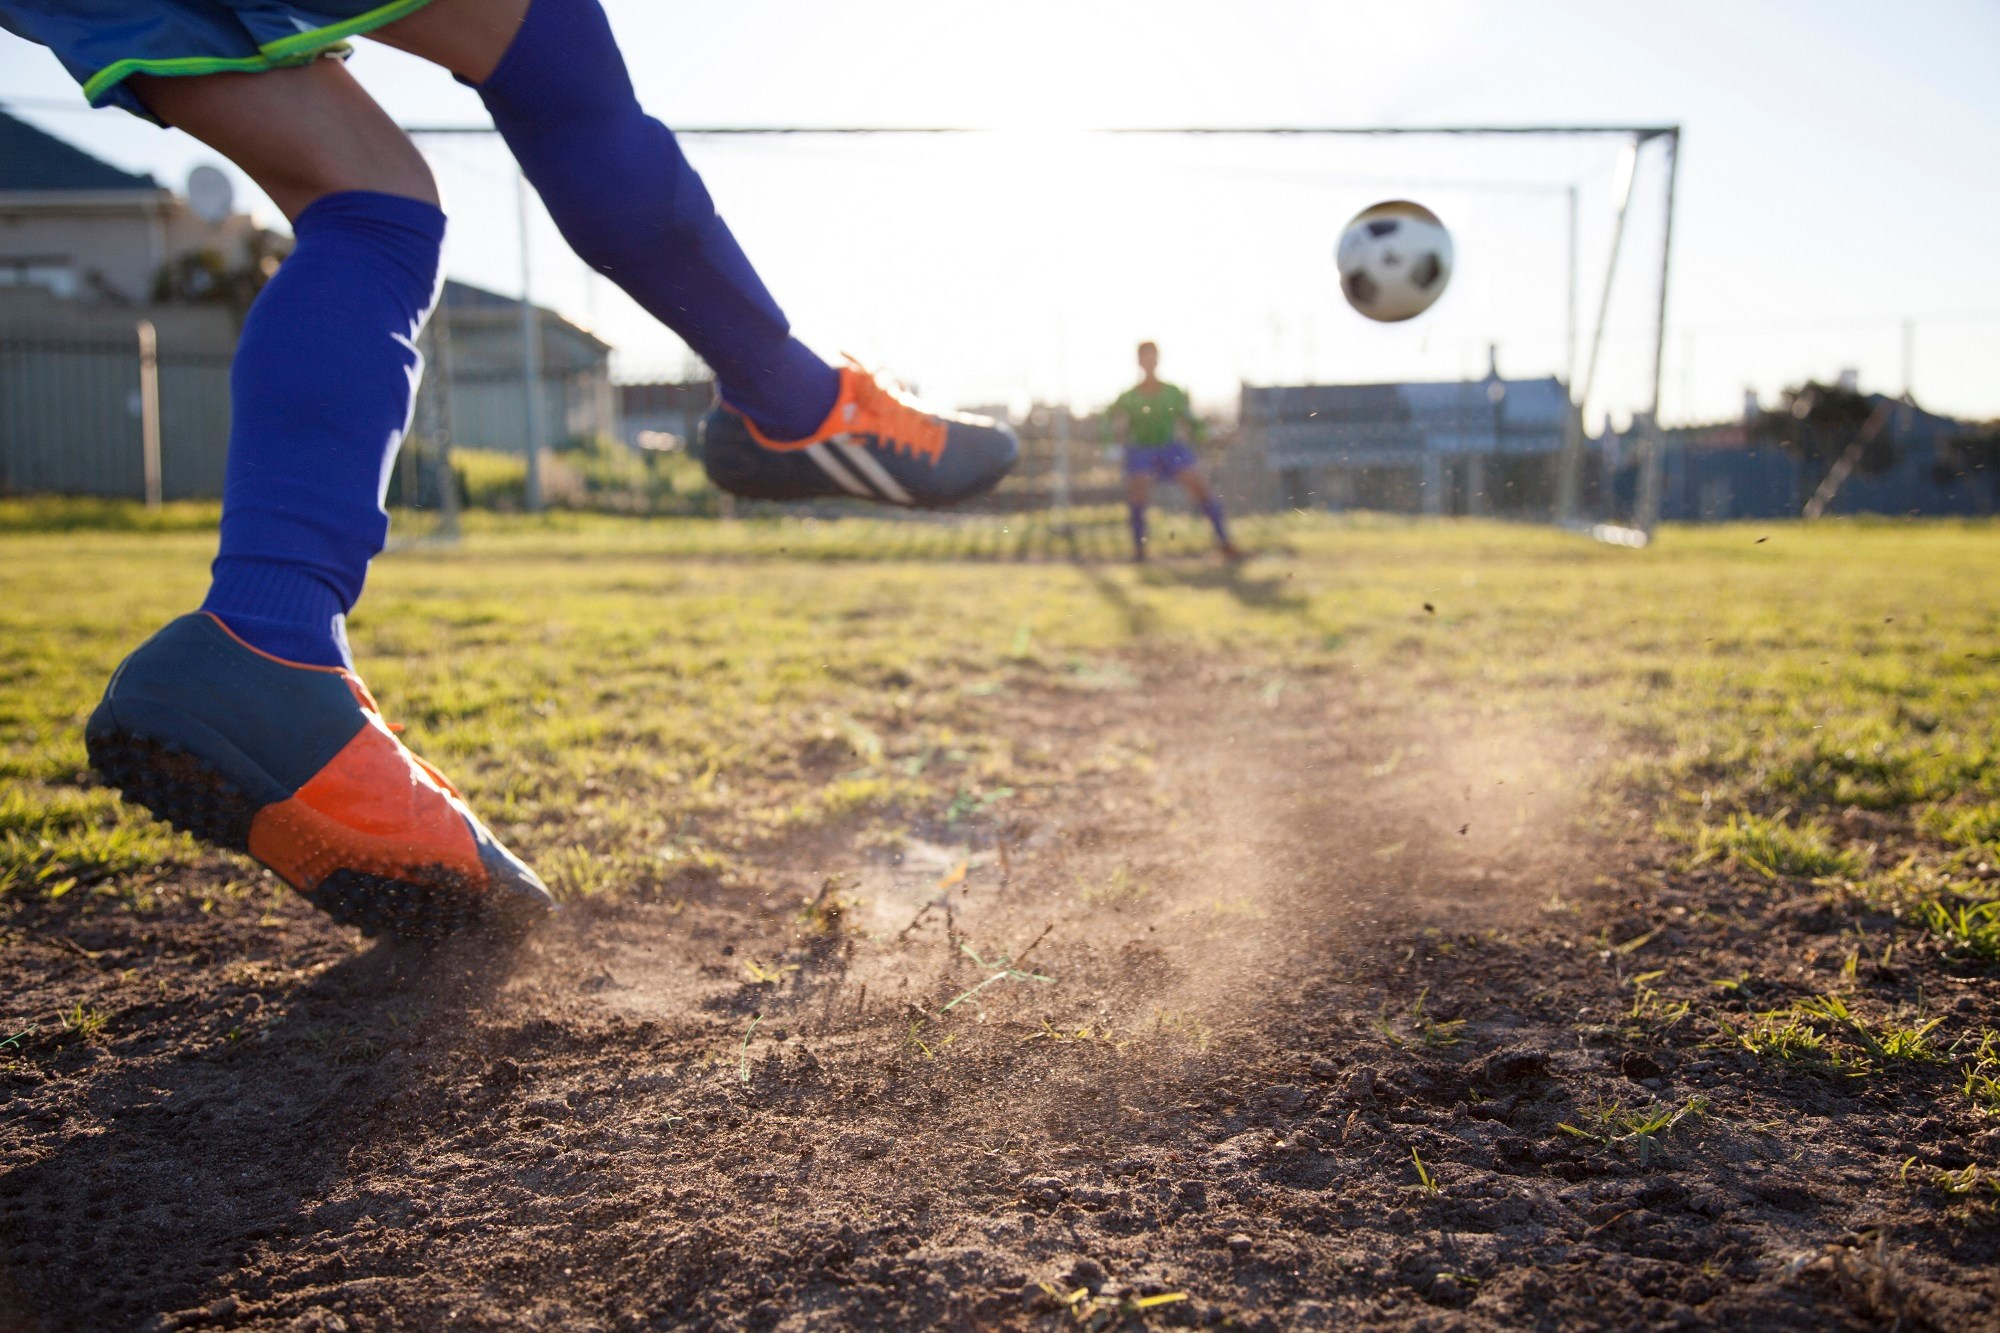 SCD Causes in Teen Athletes Often Not Identified During Screening